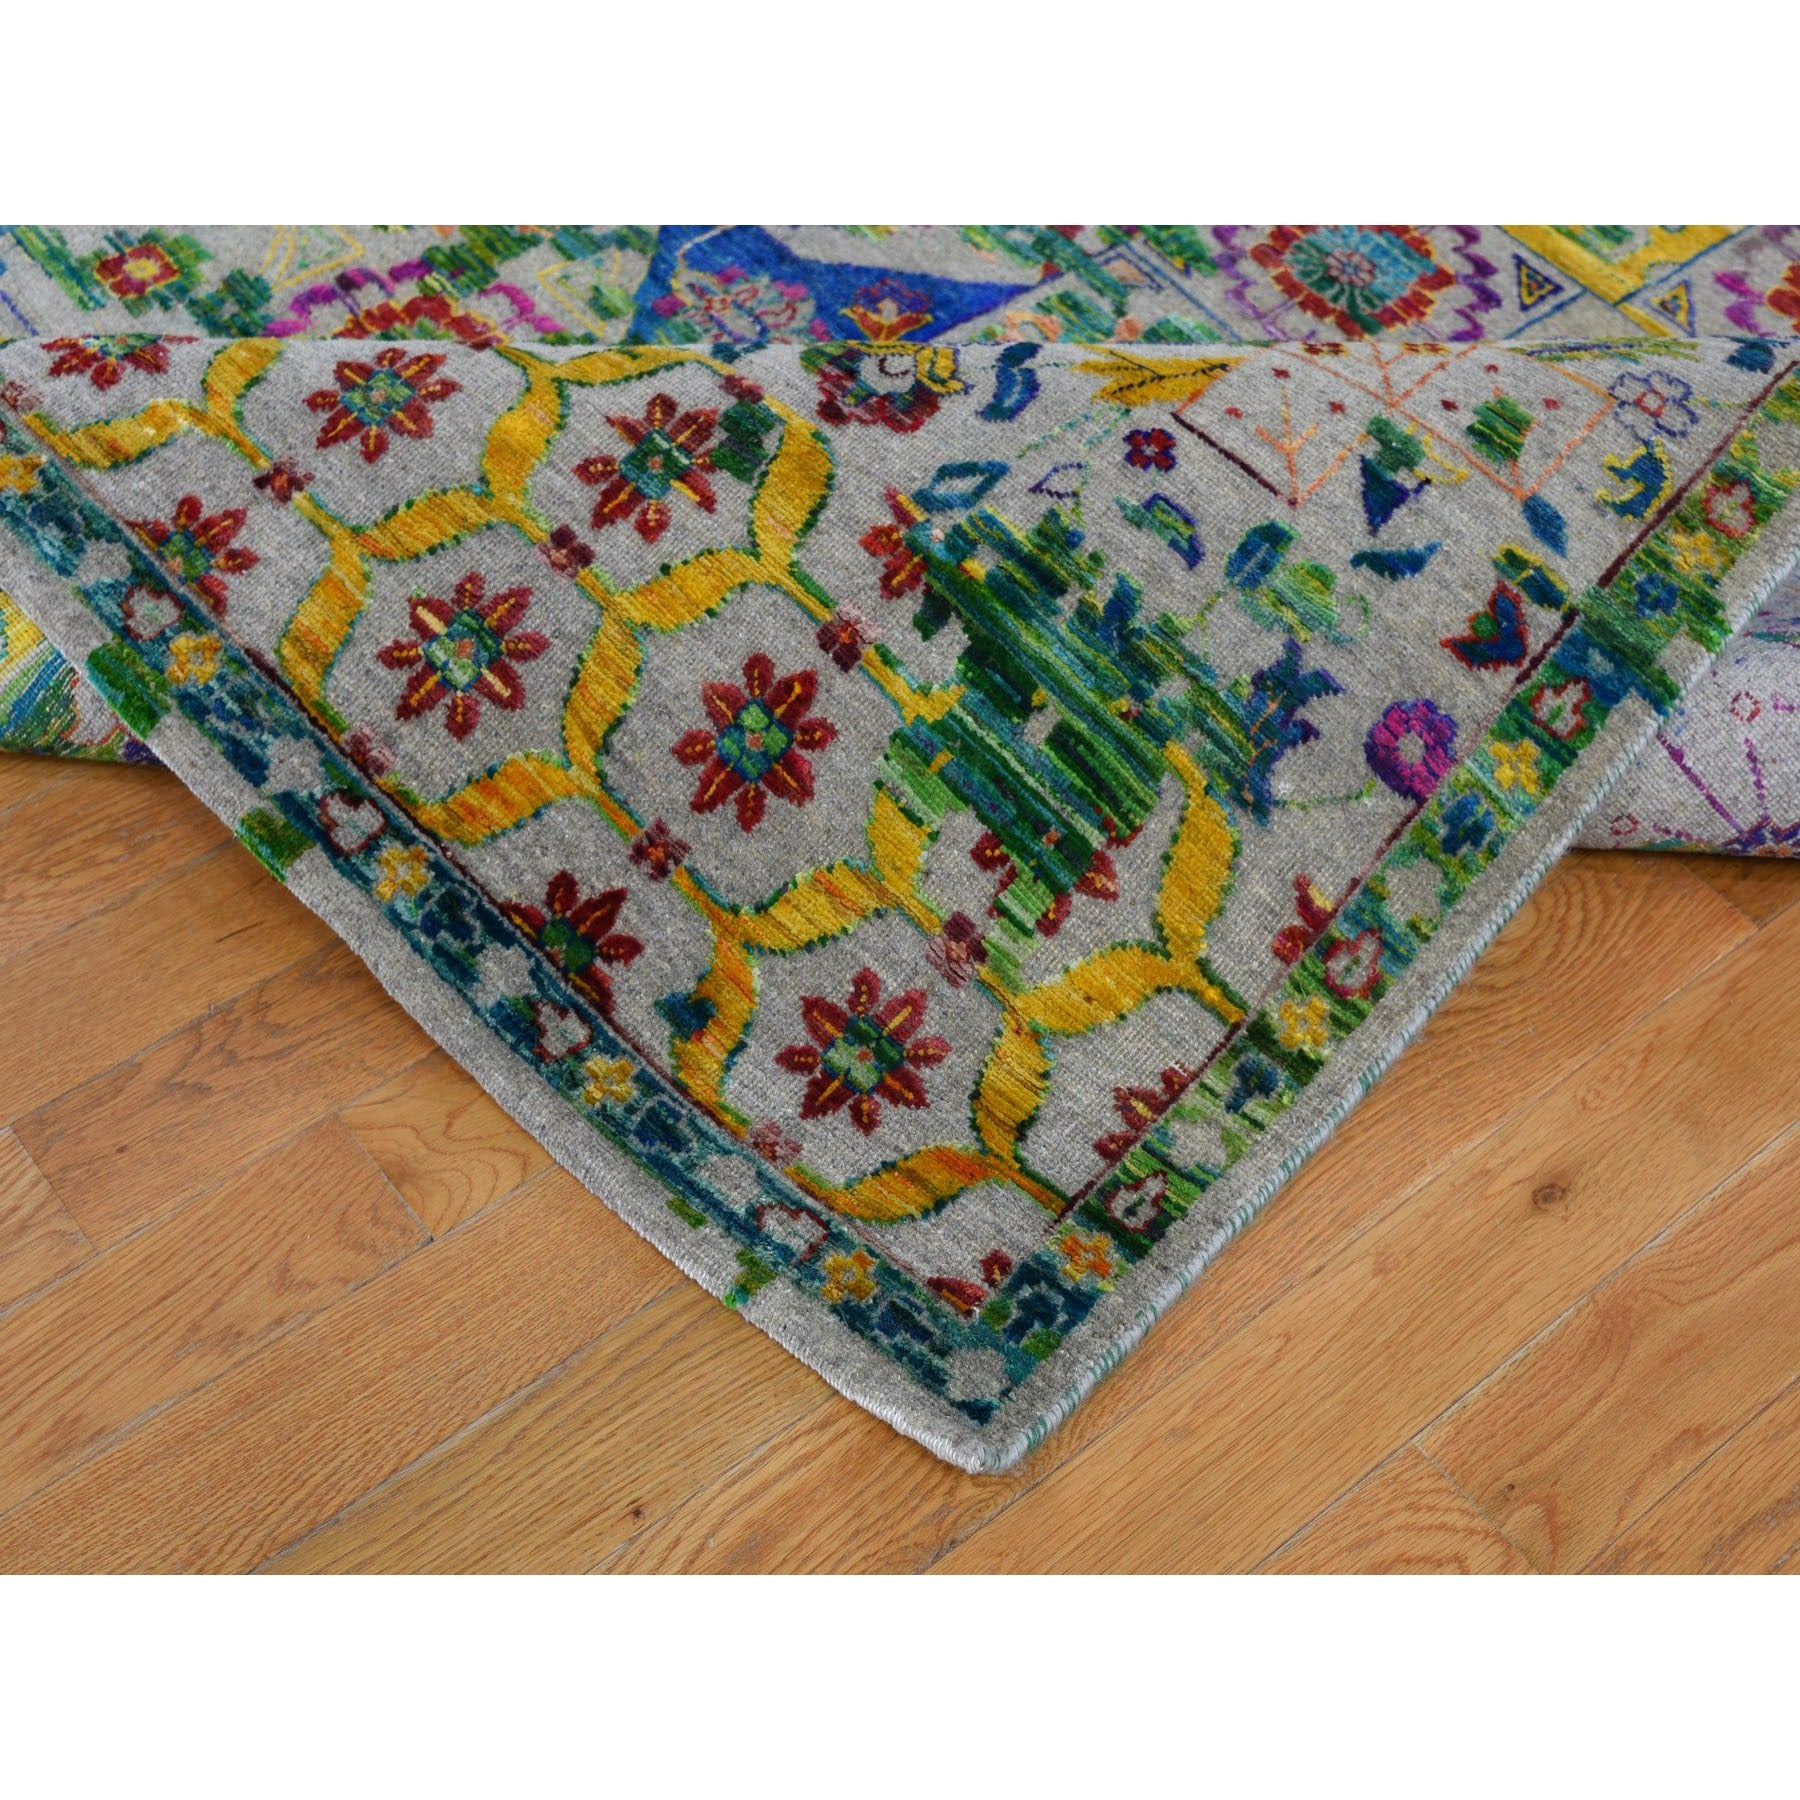 handmade rugs, carpet culture, NYC Rugs, online rugs, cheap rugs, shop rugs, area rugs